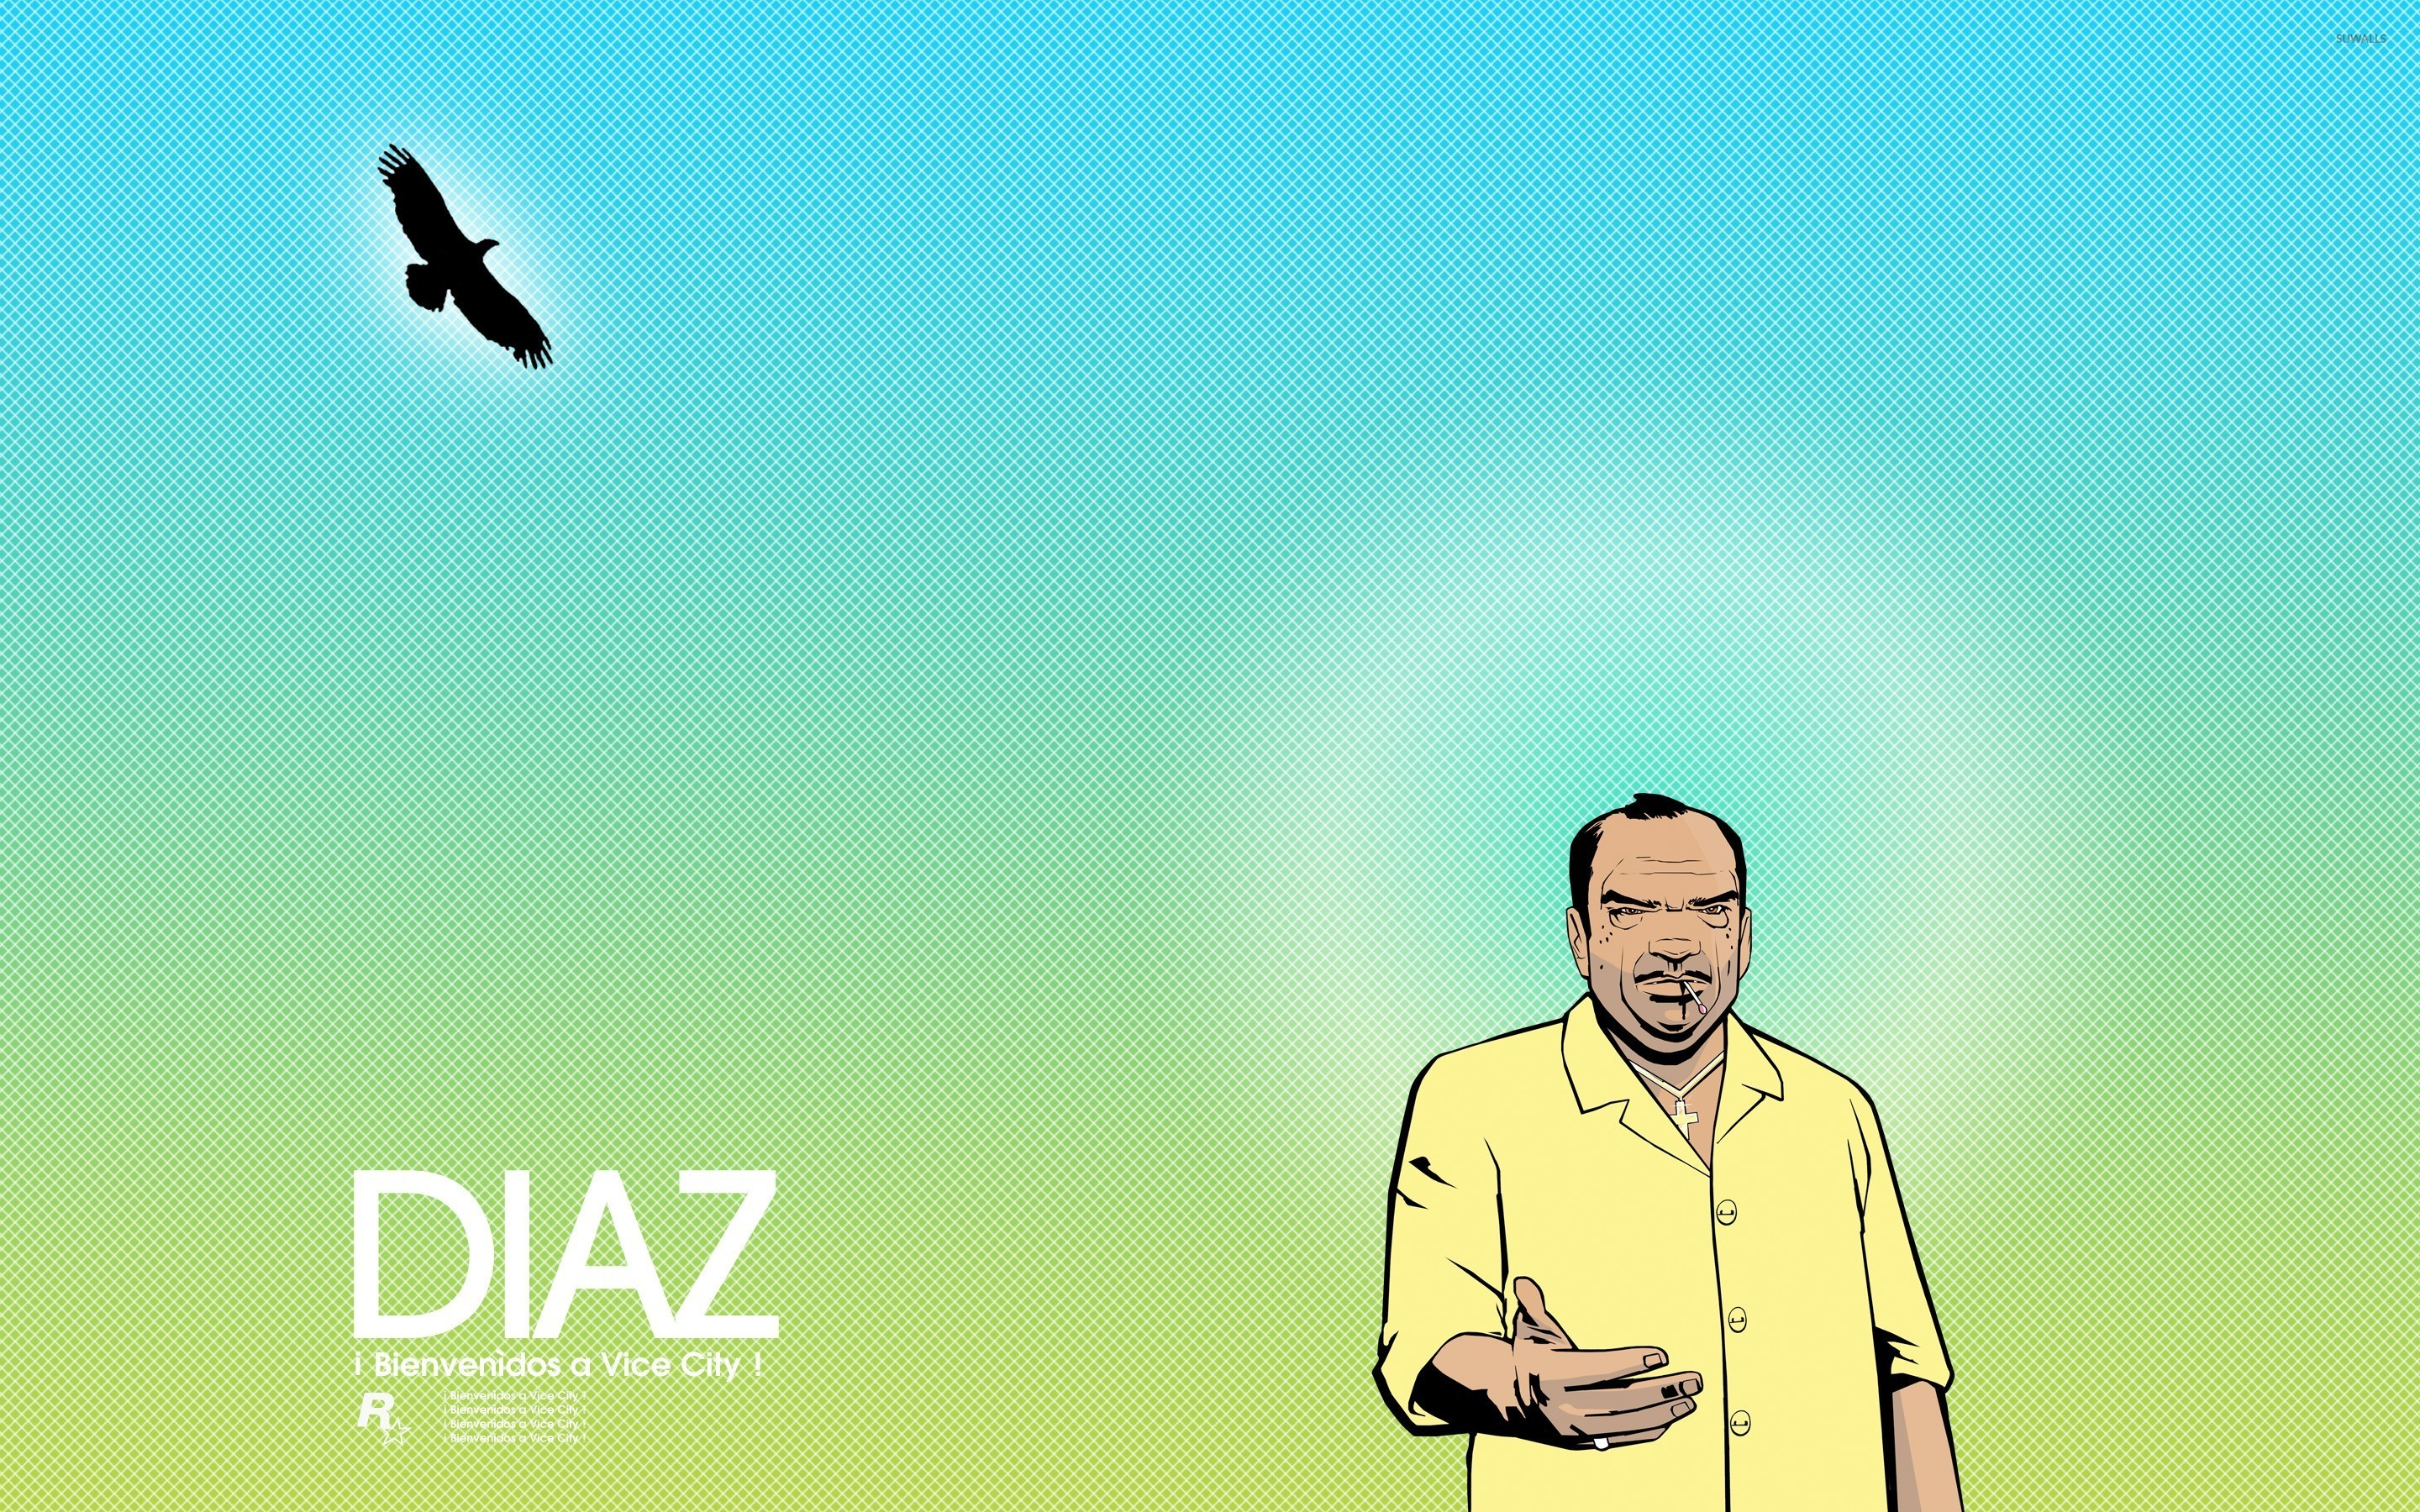 2880x1800 Ricardo Diaz welcoming you to Vice City wallpaper